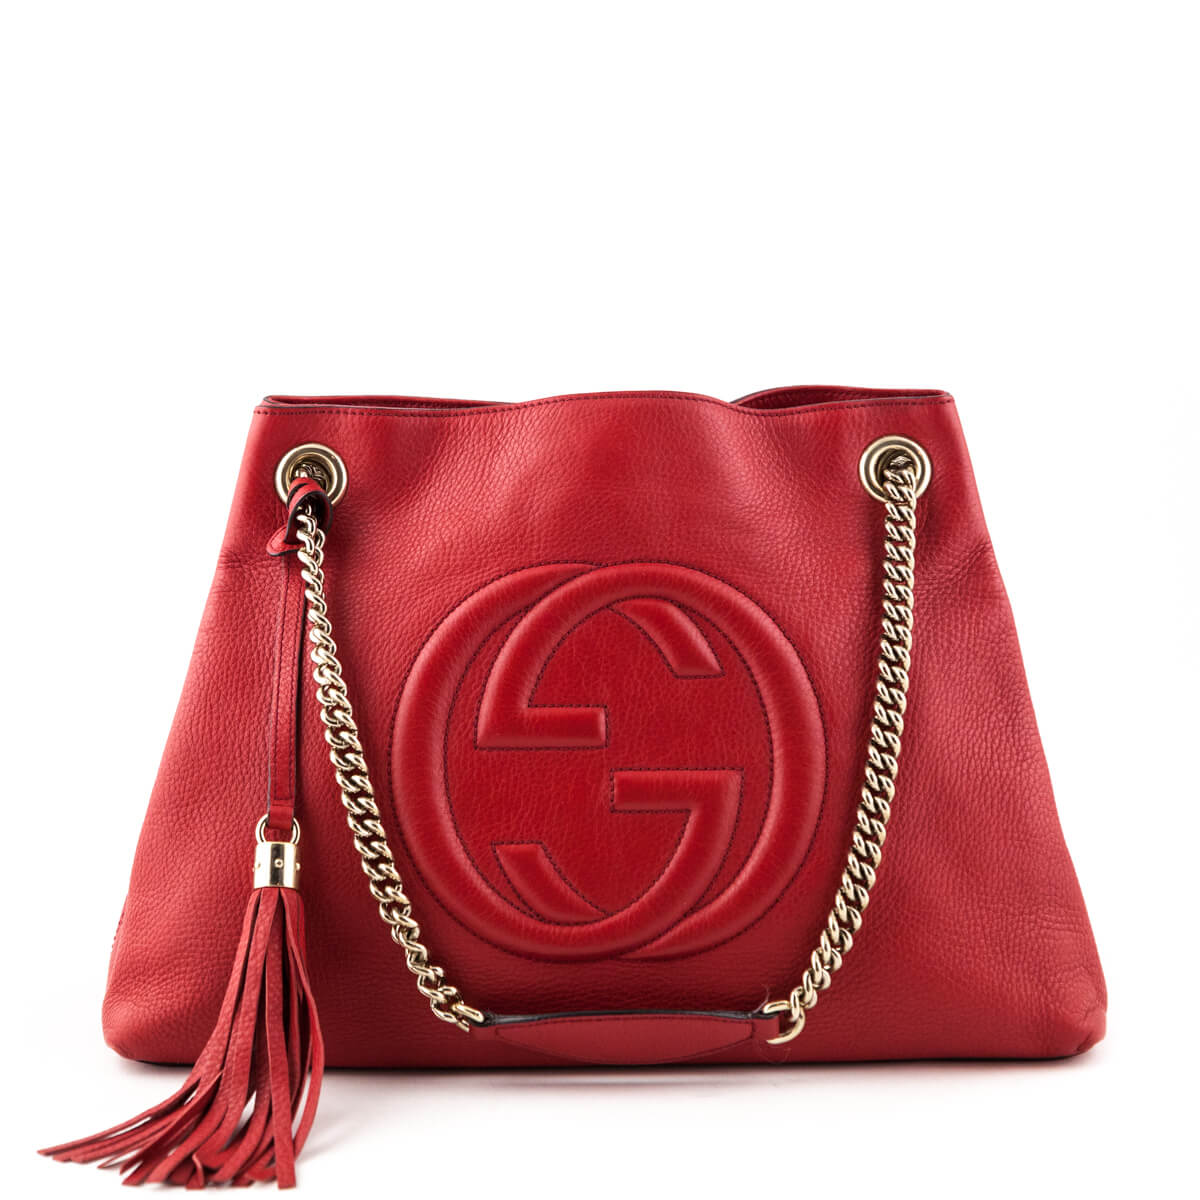 6917e6a8a0035 Gucci Red Soho Shoulder Bag - LOVE that BAG - Preowned Authentic Designer  Handbags ...